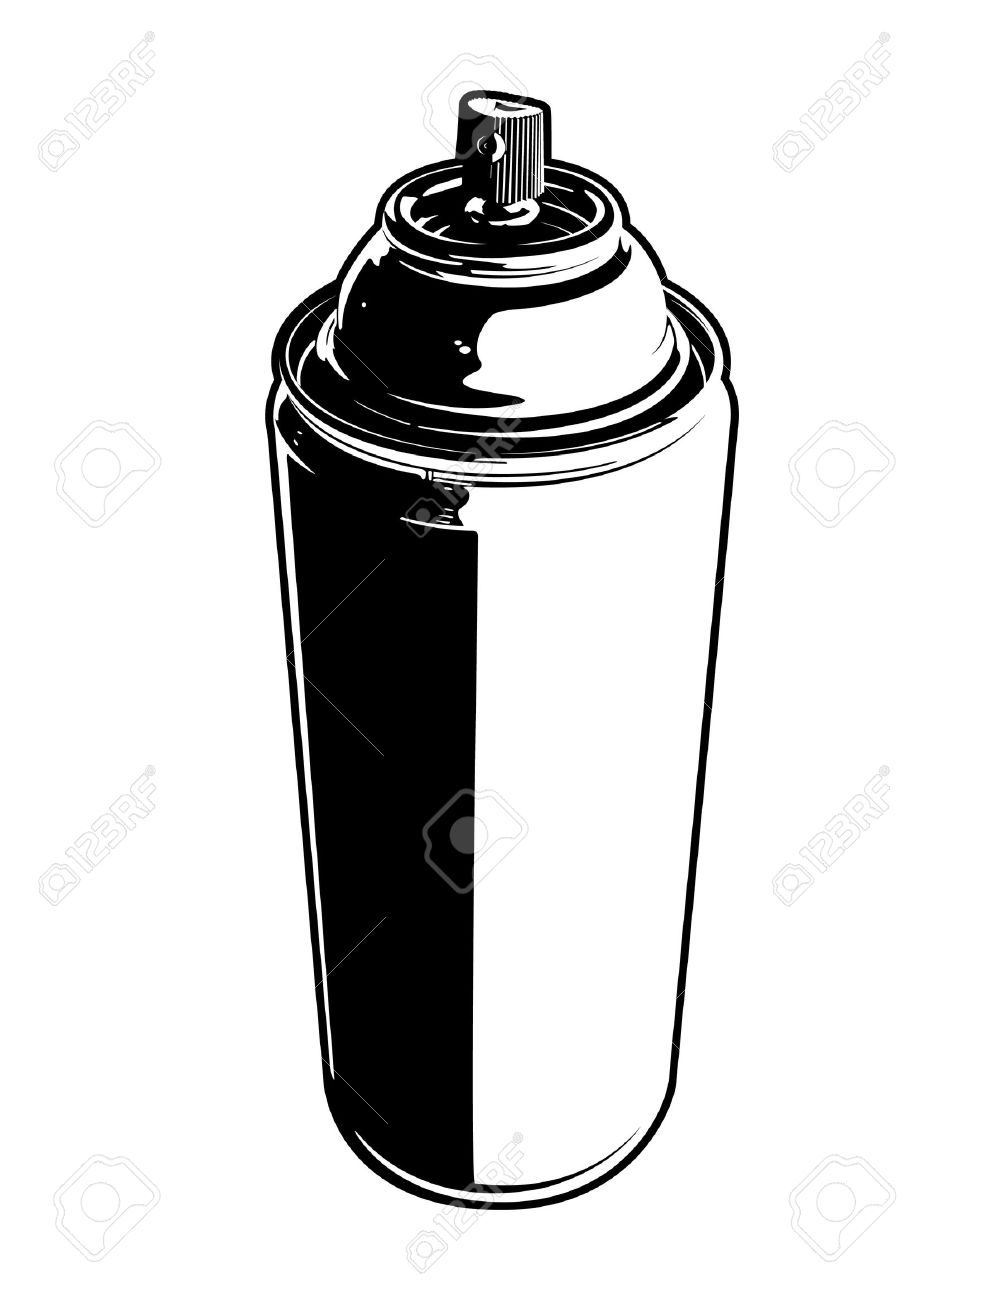 can of spray paint royalty free cliparts vectors and stock rh 123rf com spray paint vector pack spray paint vector free